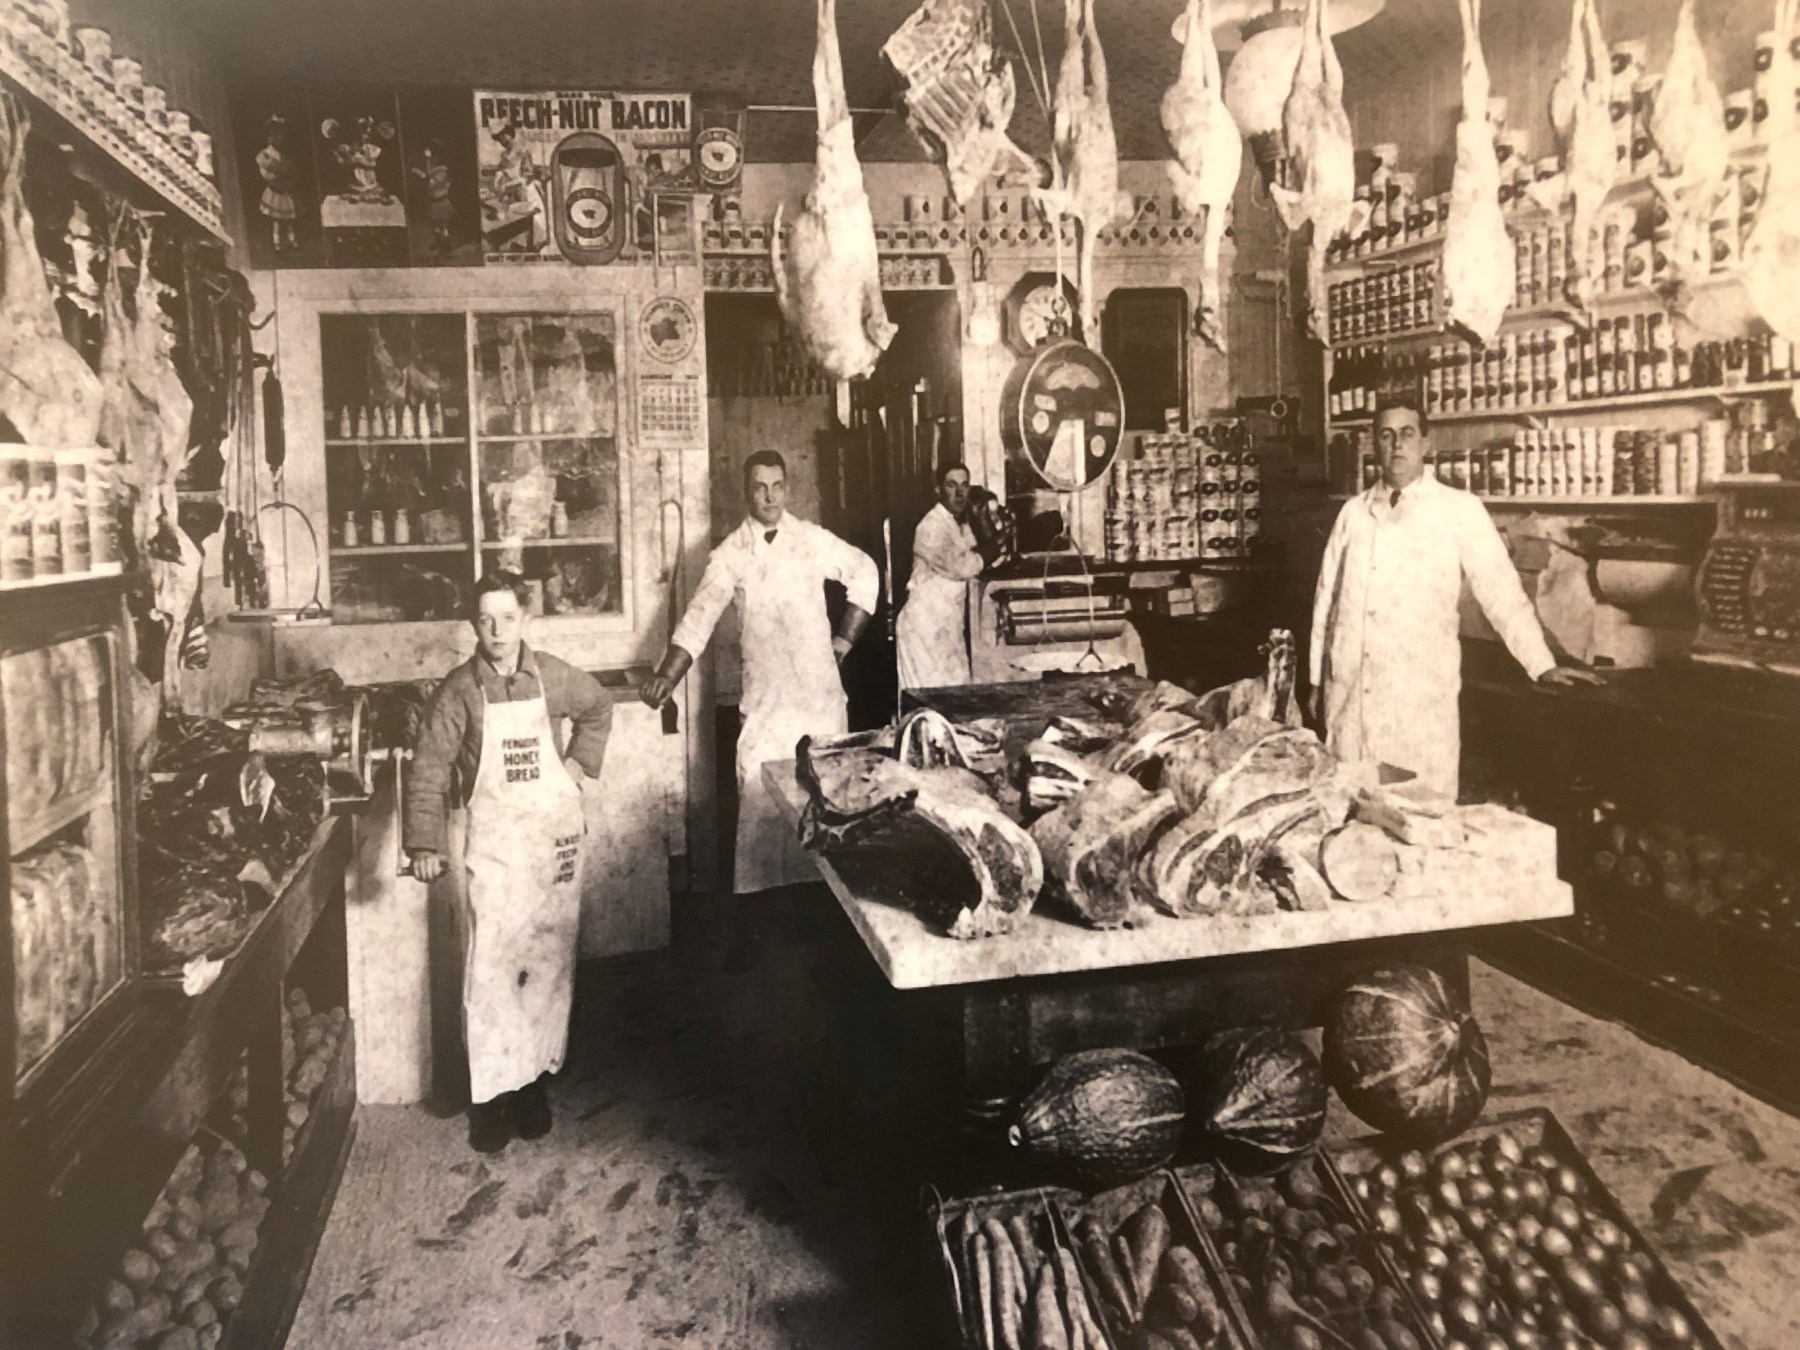 Linnell Market, downtown Woburn, 1913